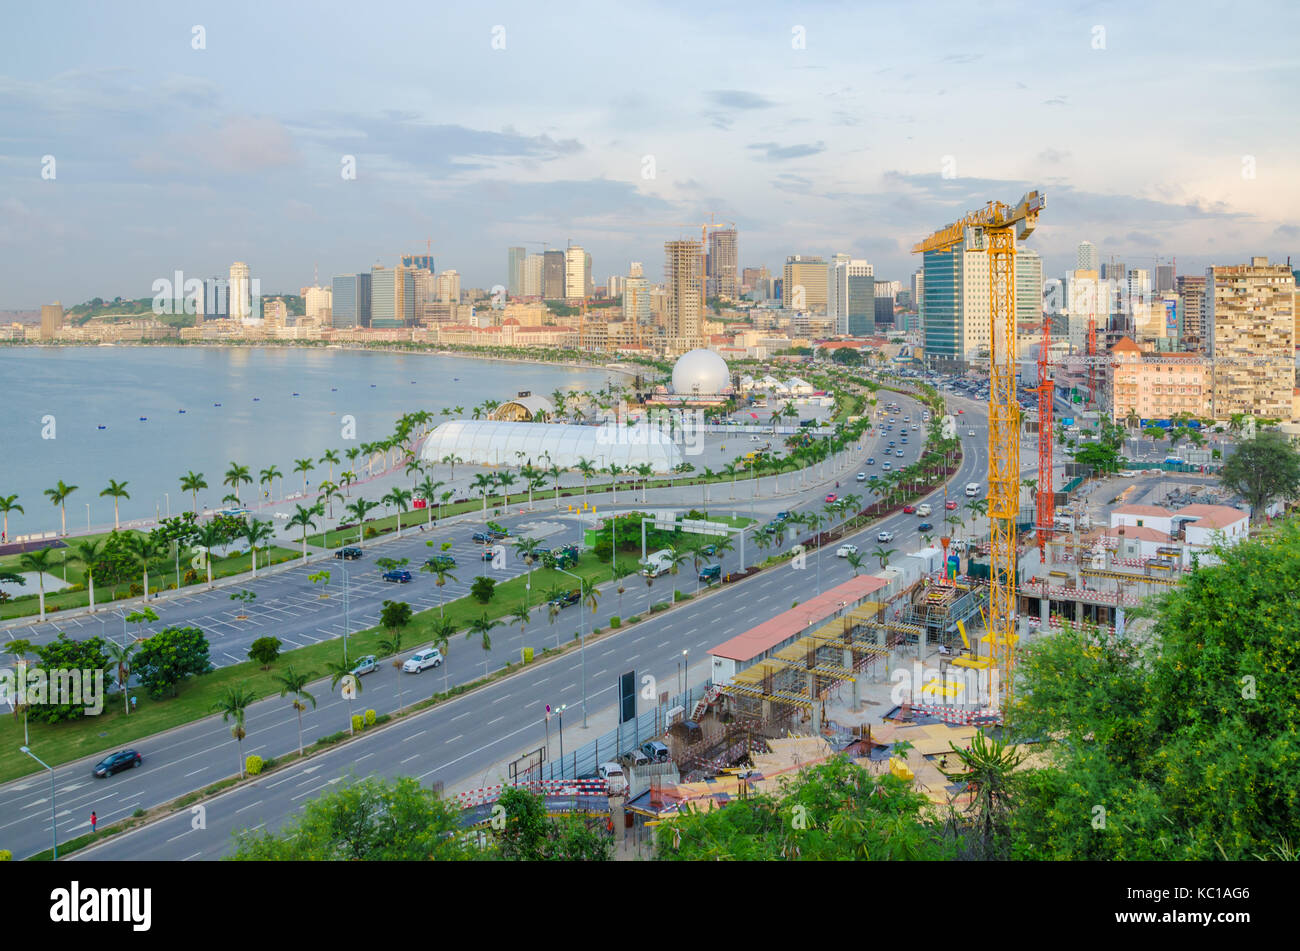 View over the skyline of Luanda with constructions cranes, highway and the Luandan bay, Angola, Southern Africa Stock Photo